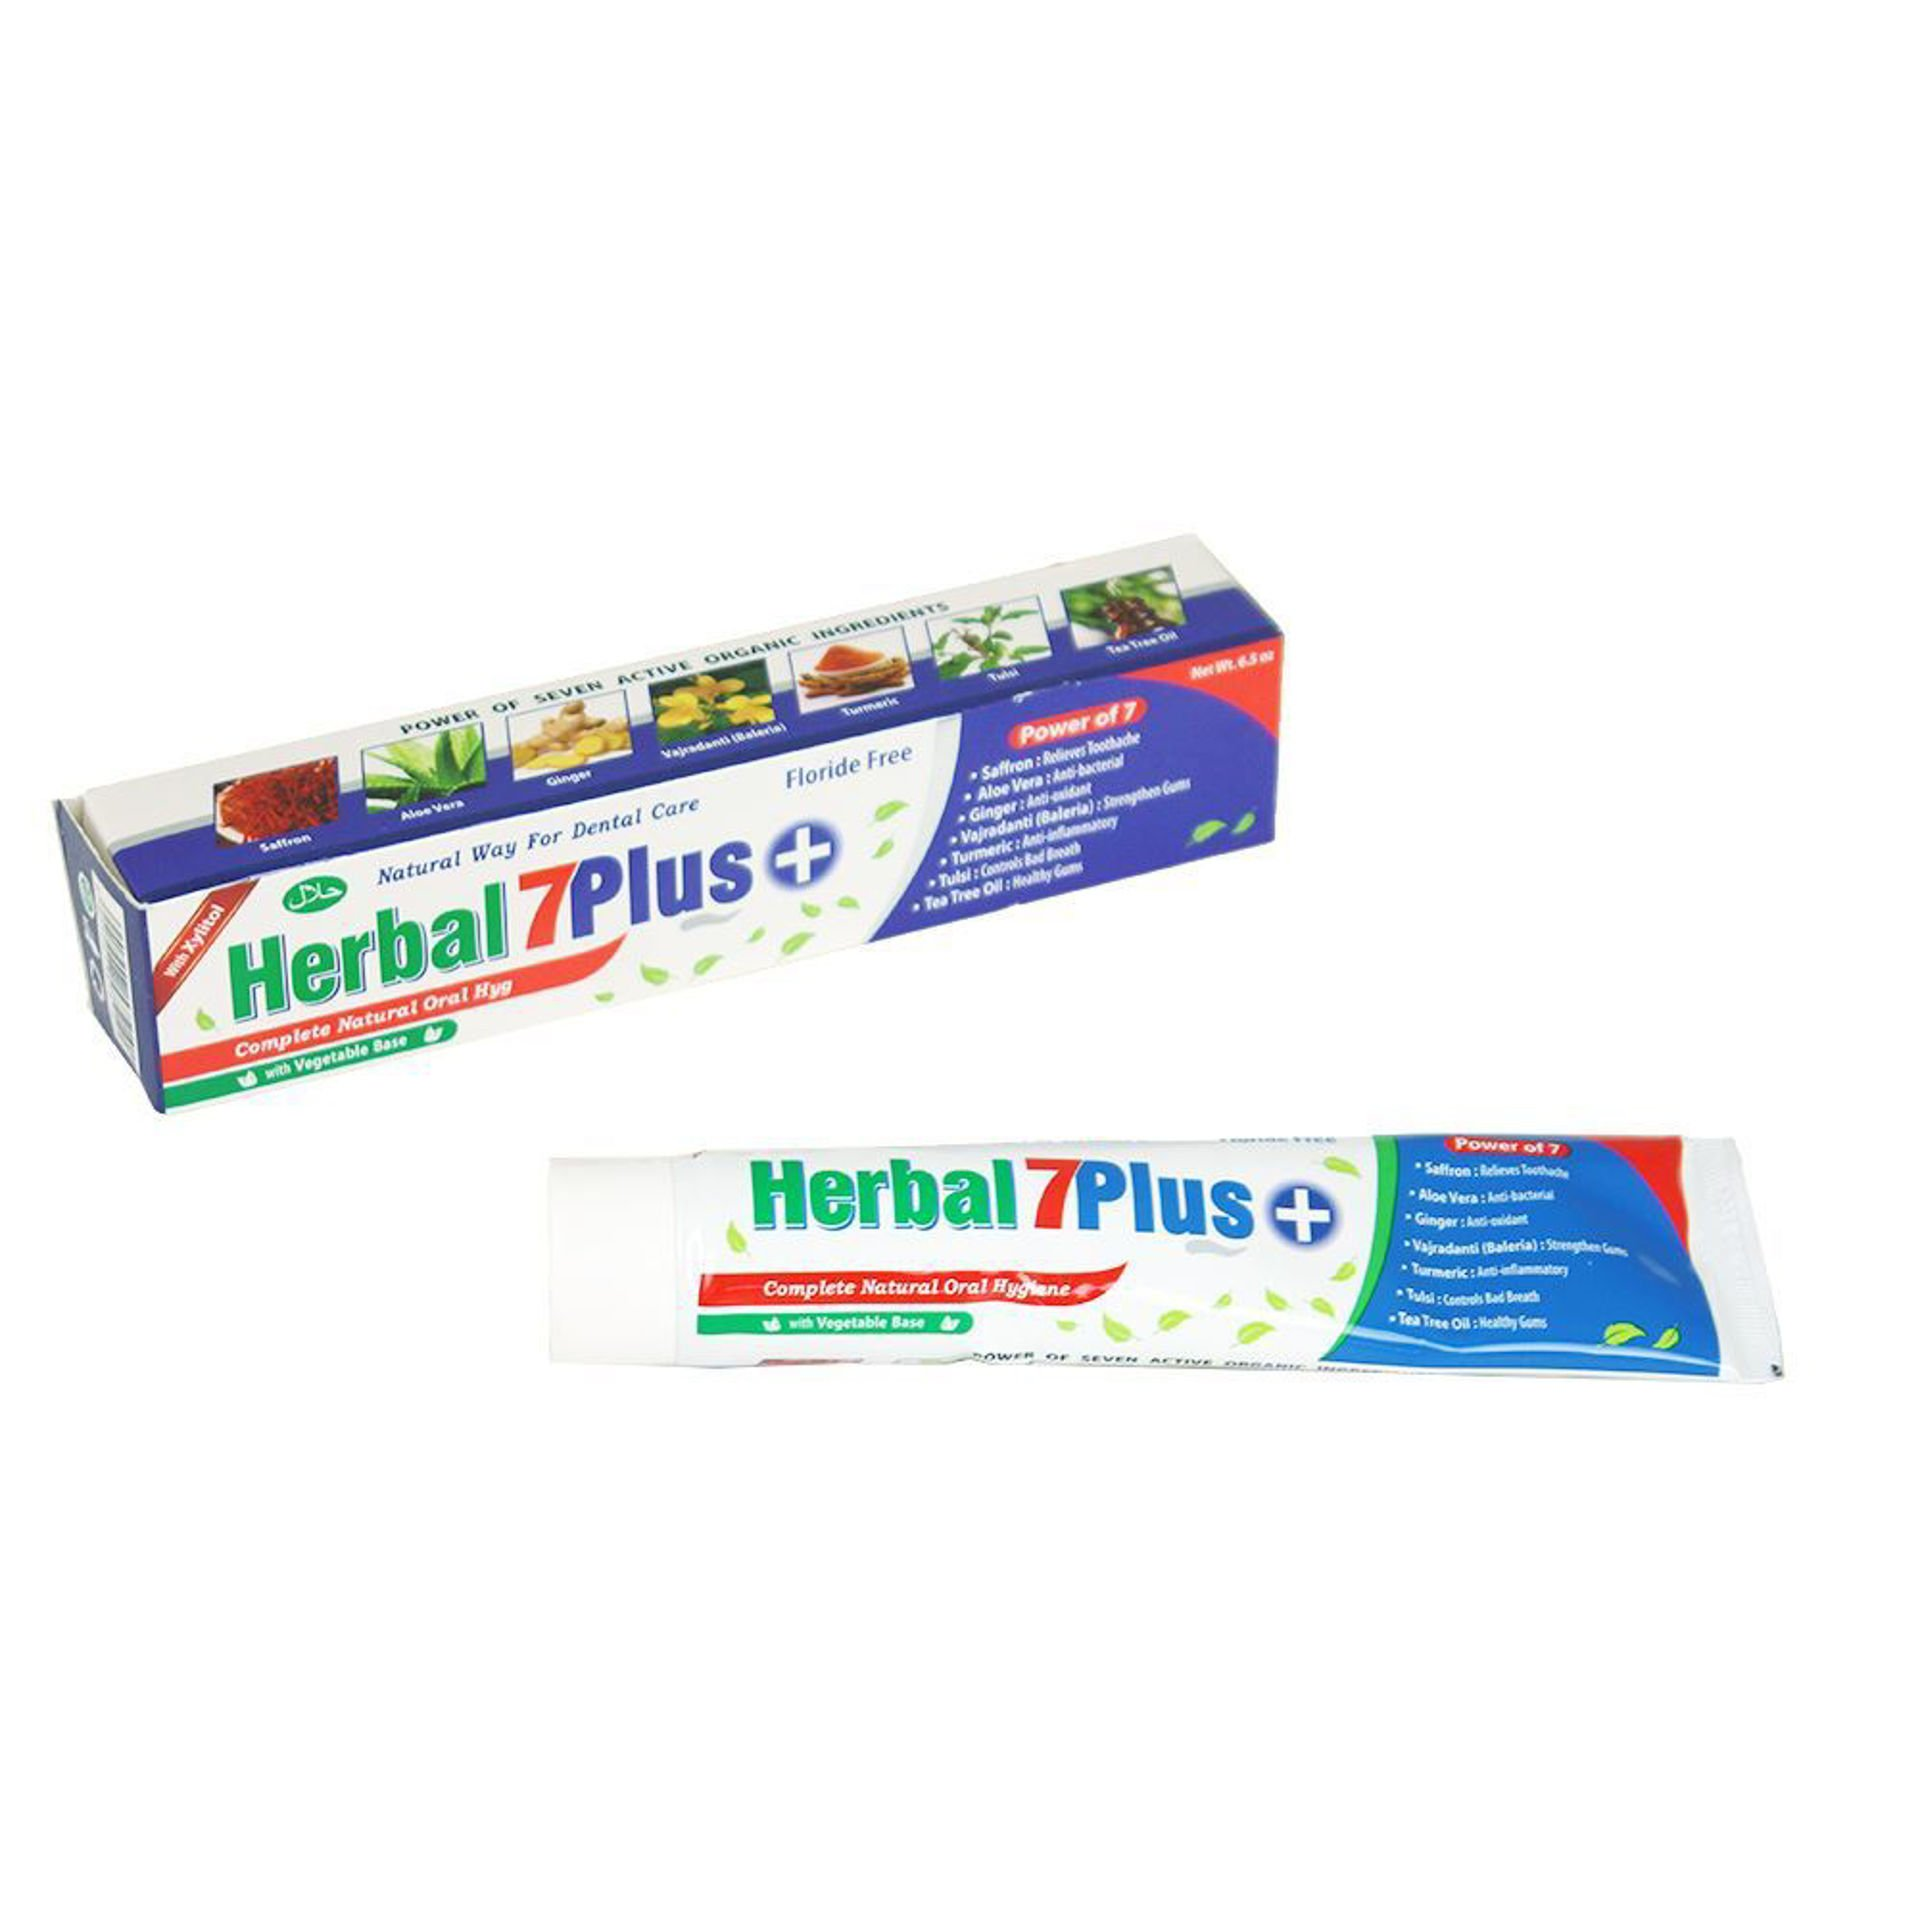 Picture of Herbal 7Plus+ Toothpaste